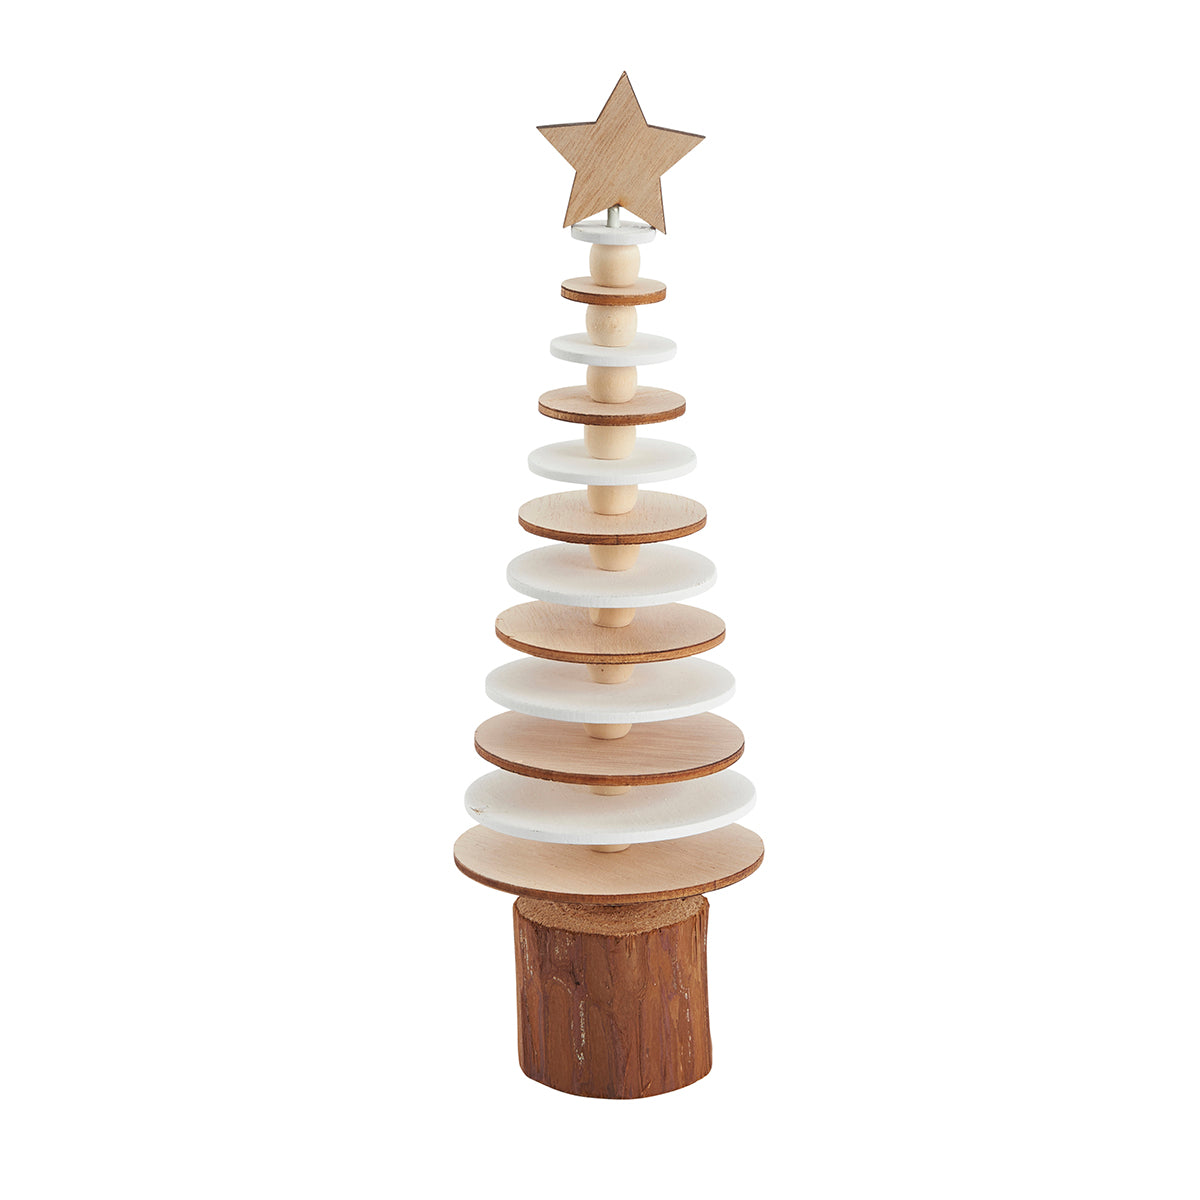 Small wooden layer tree